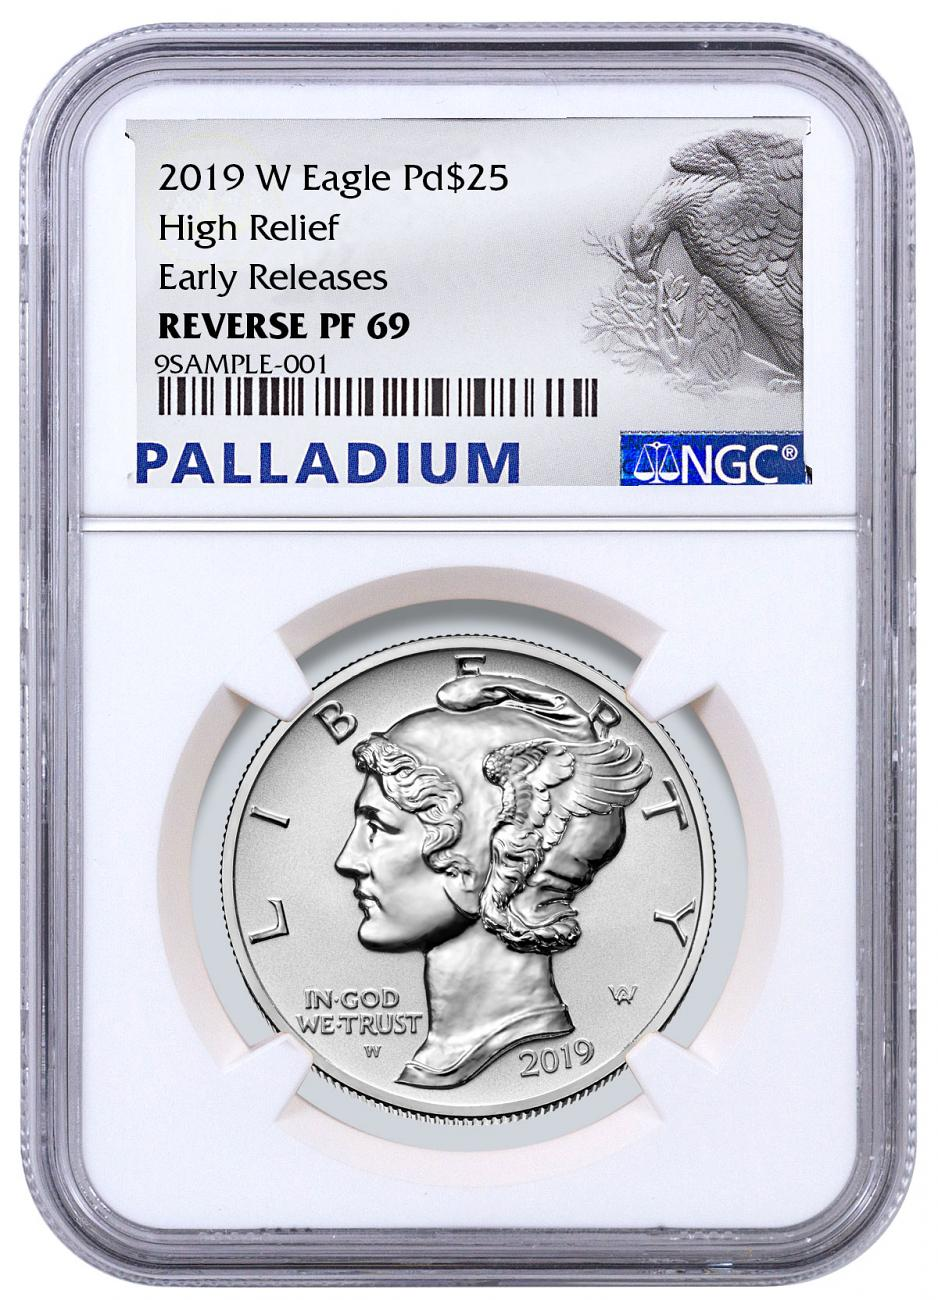 2019-W 1 oz High Relief Palladium Eagle Reverse Proof $25 Coin NGC PF69 ER Palladium Label